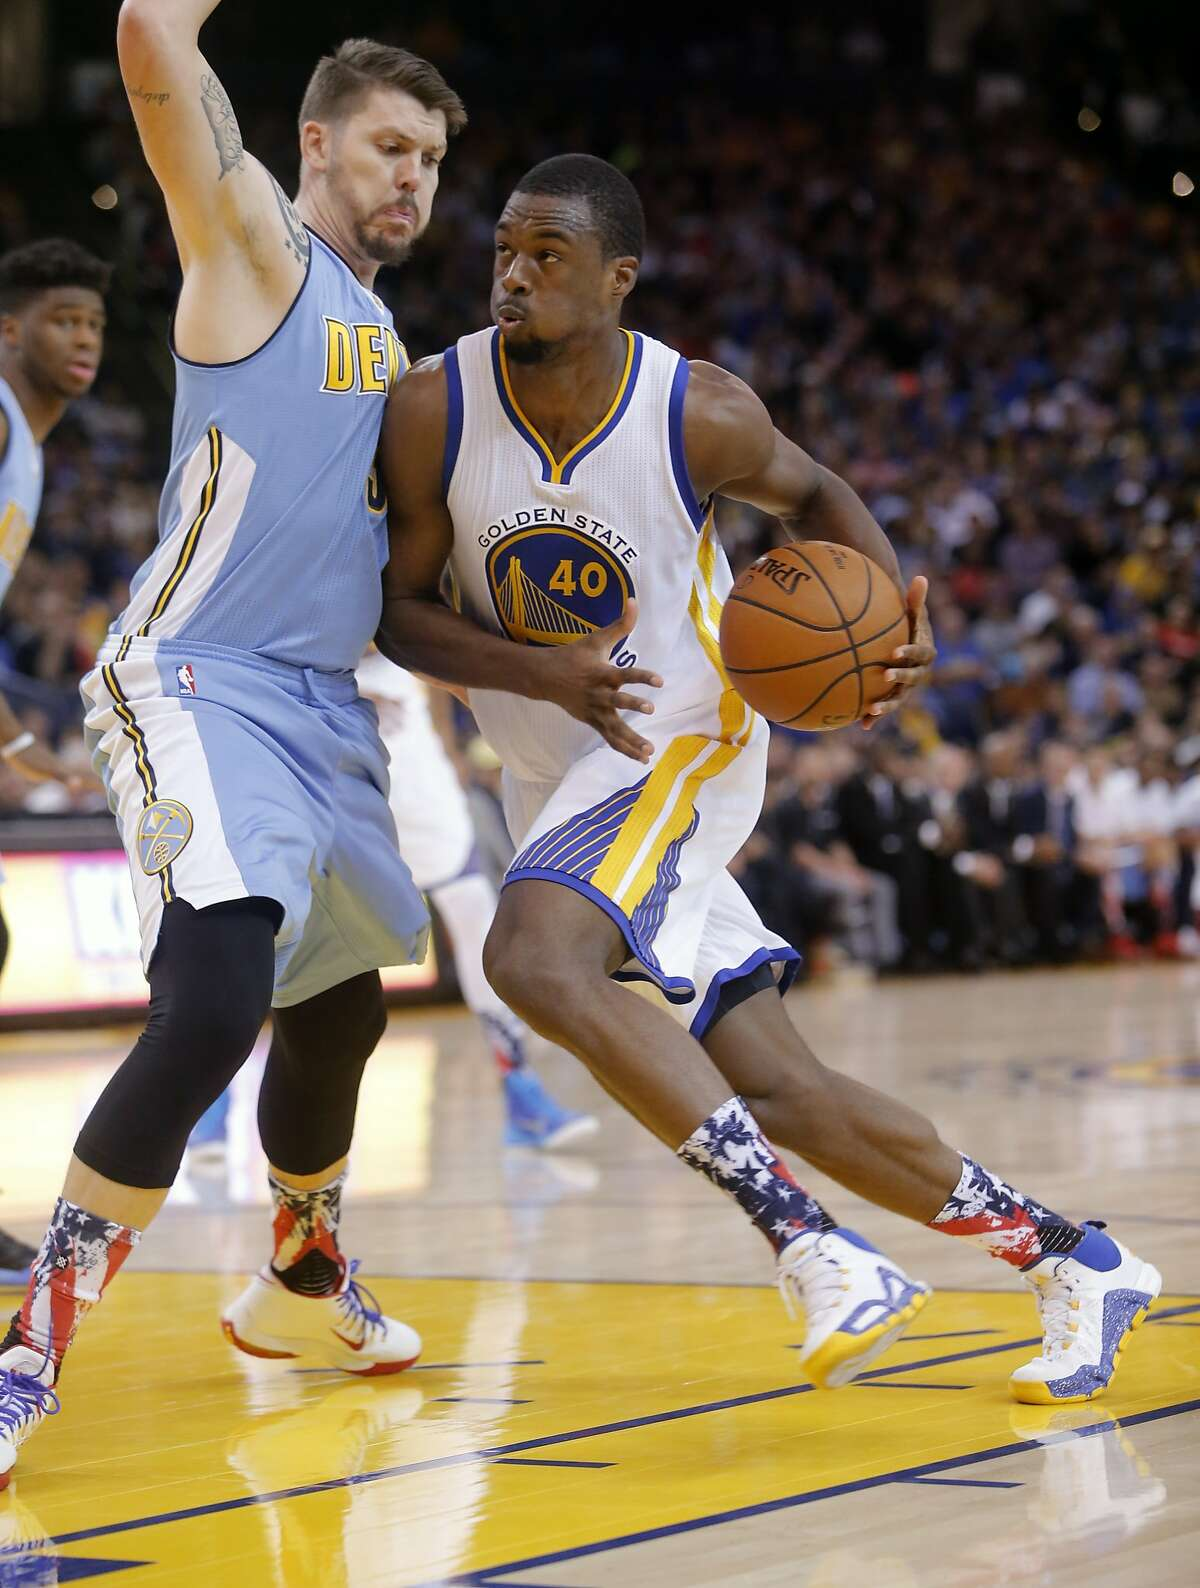 Warriors' Harrison Barnes, 40 drives inside the Nuggets' MIke Miller, 3 as the Golden Sate Warriors take on the Denver Nuggets at the Oracle Arena in Oakland, Calif. on Fri. November 6, 2015.